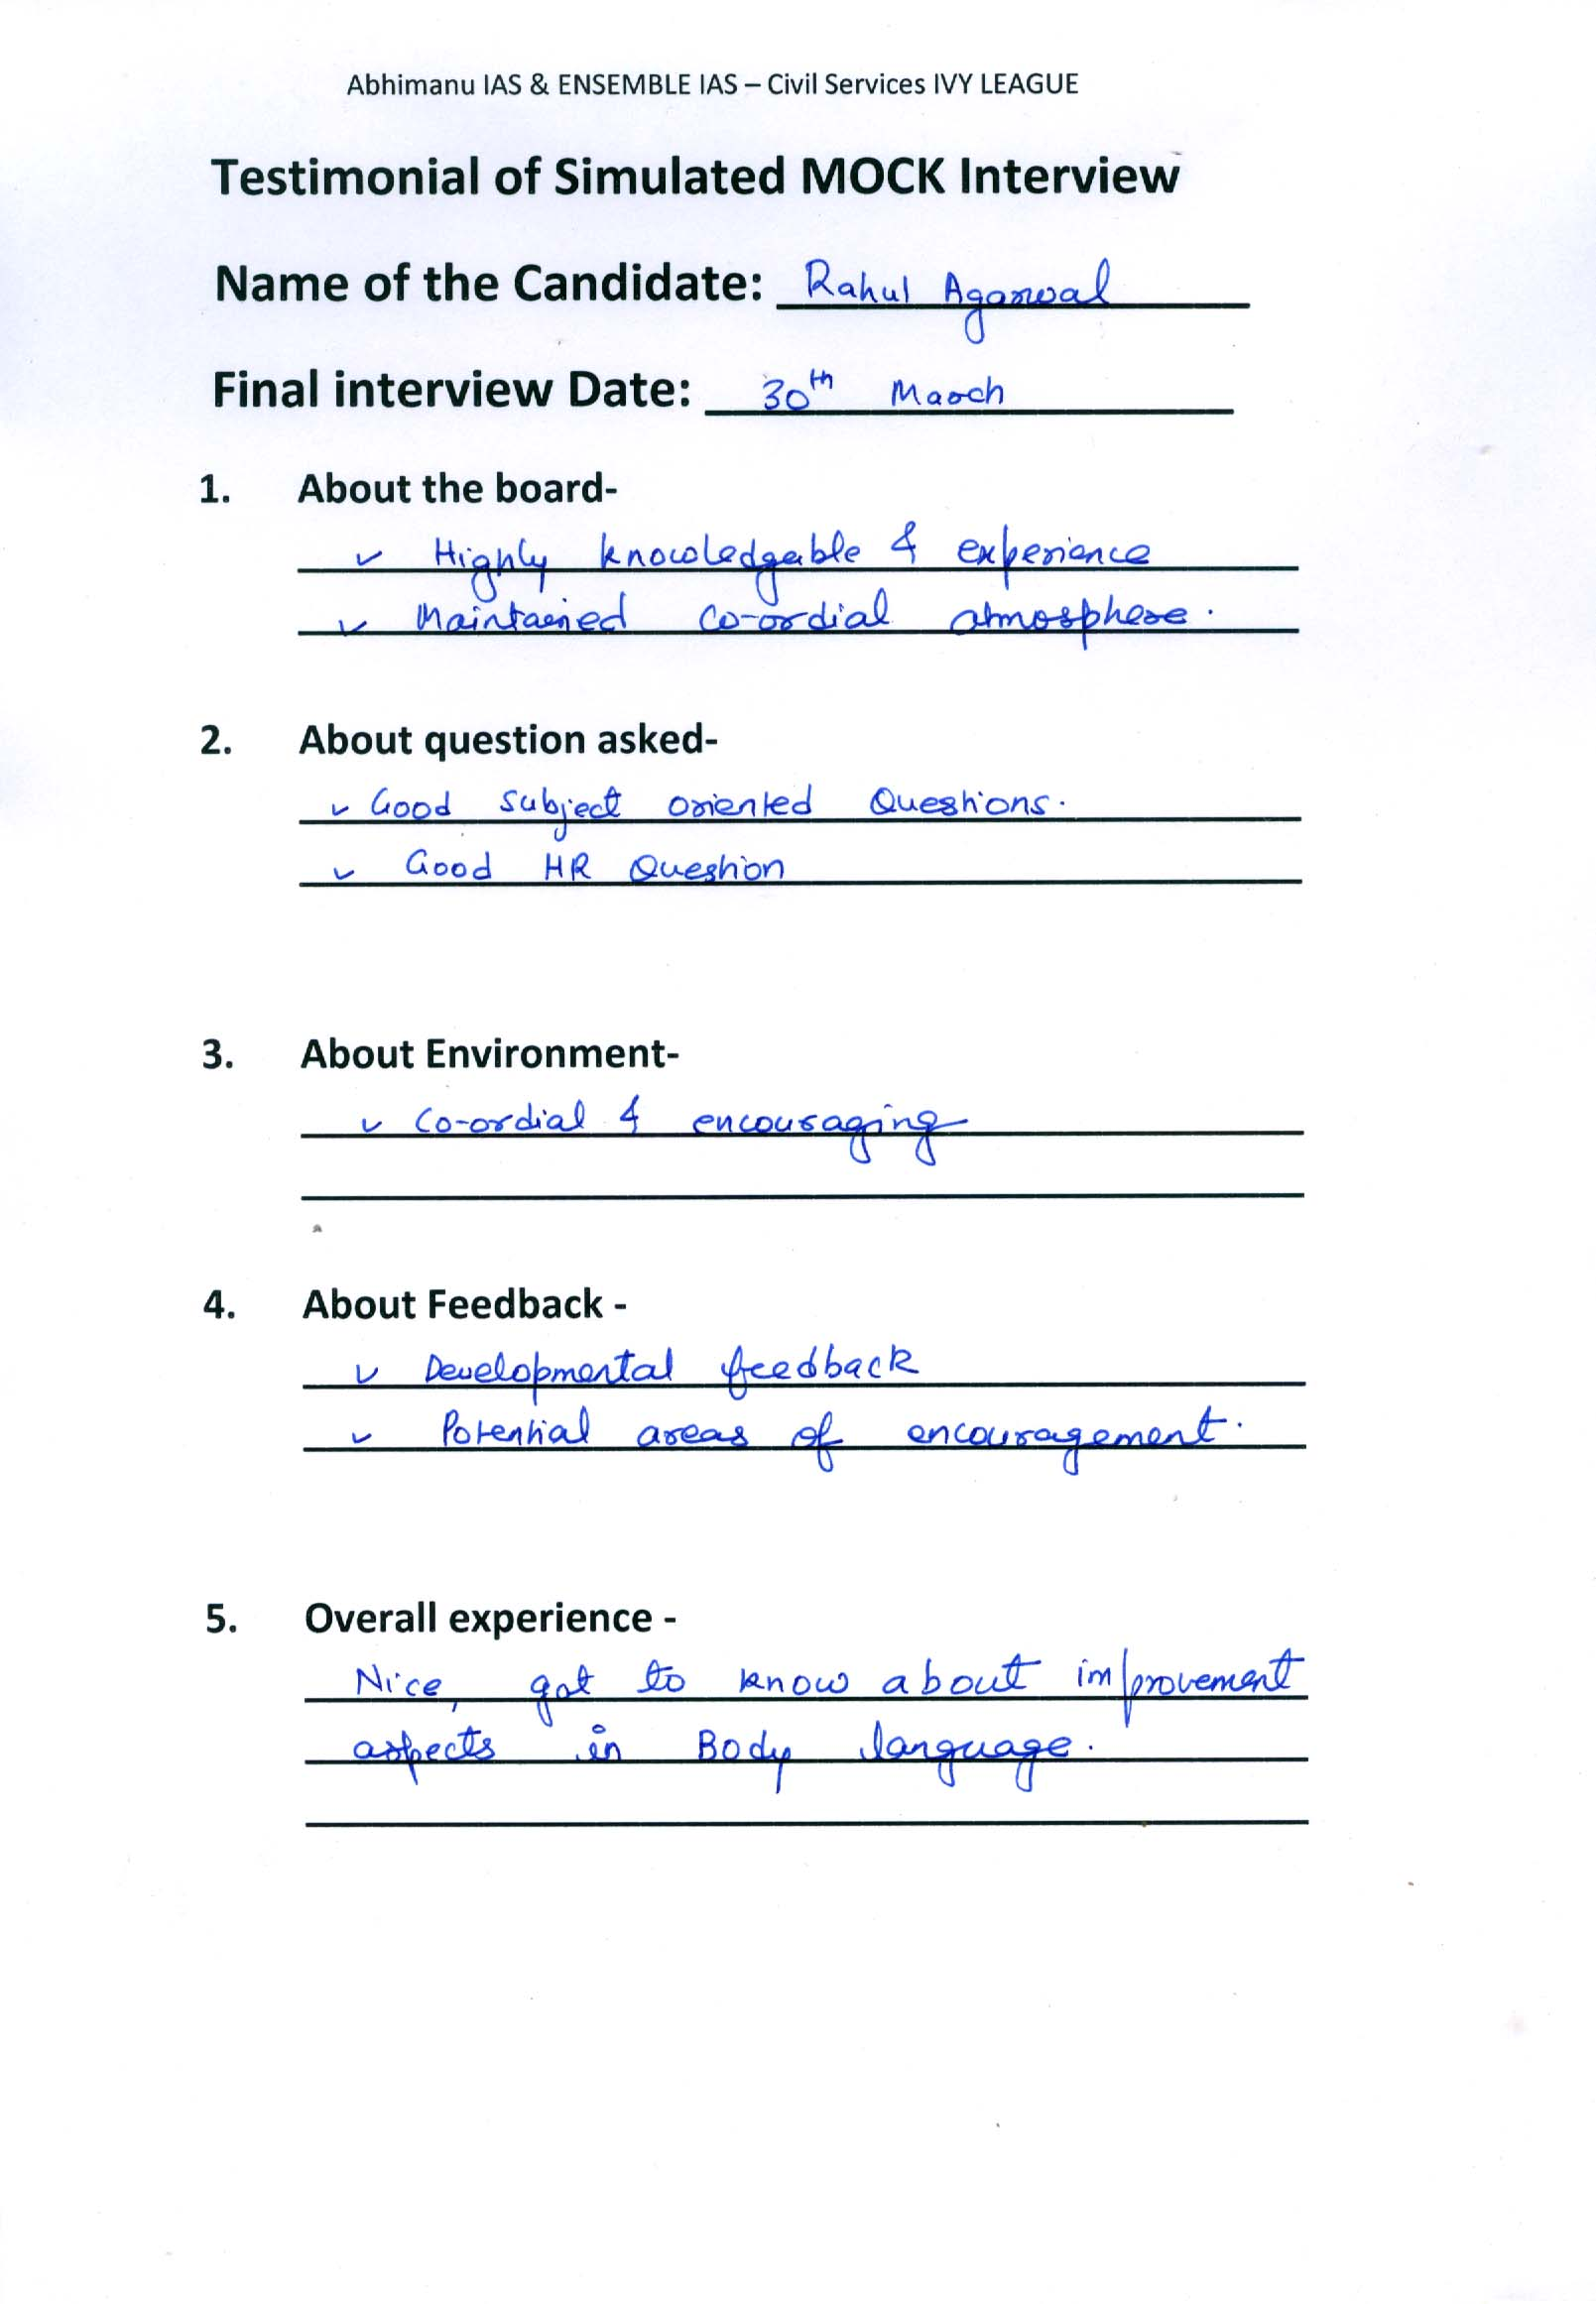 Interview Testimonial By- Rahul Aggarwal